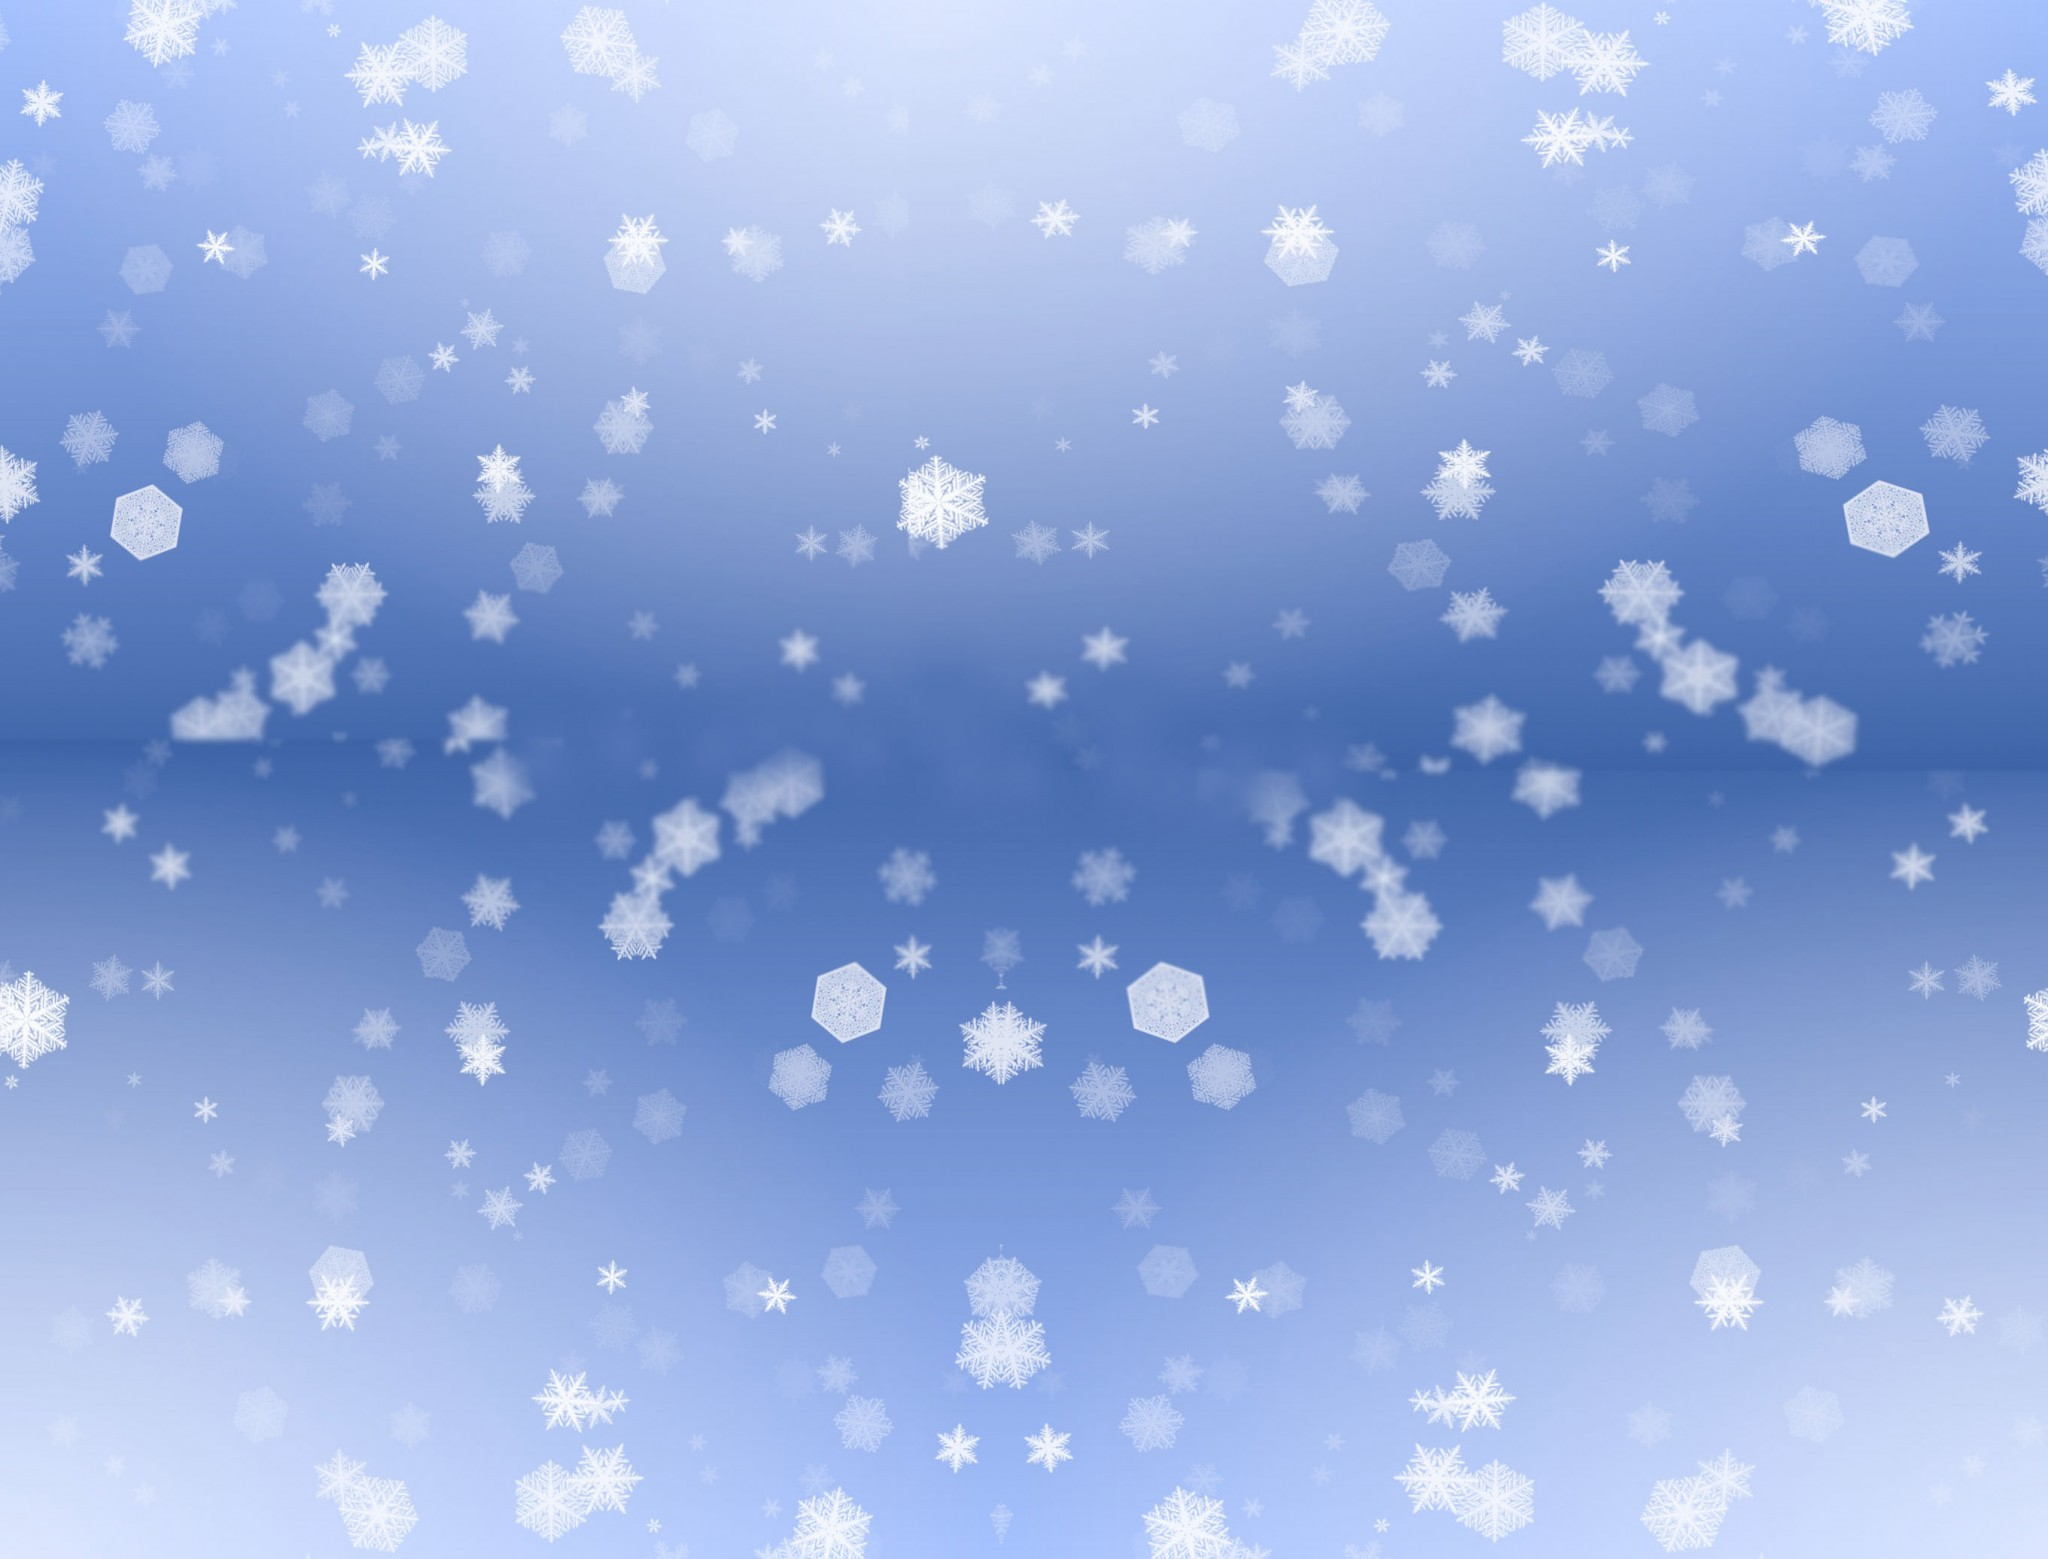 Wallpaper Phone Falling Snowflakes Snow Emergency Lifted In Perry County Whiz News